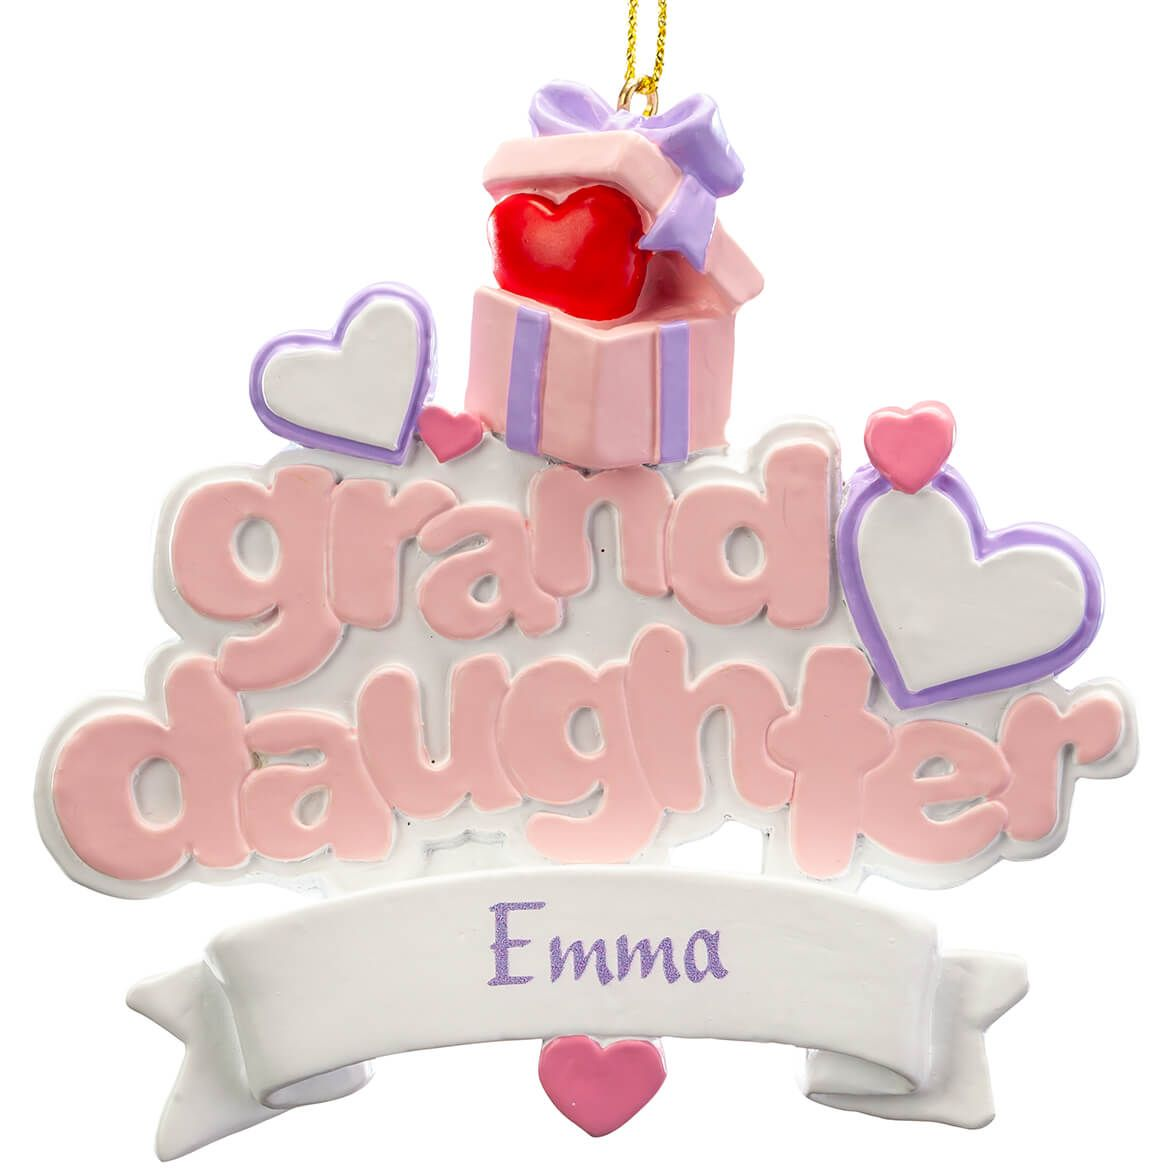 Personalized Granddaughter Ornament-368191